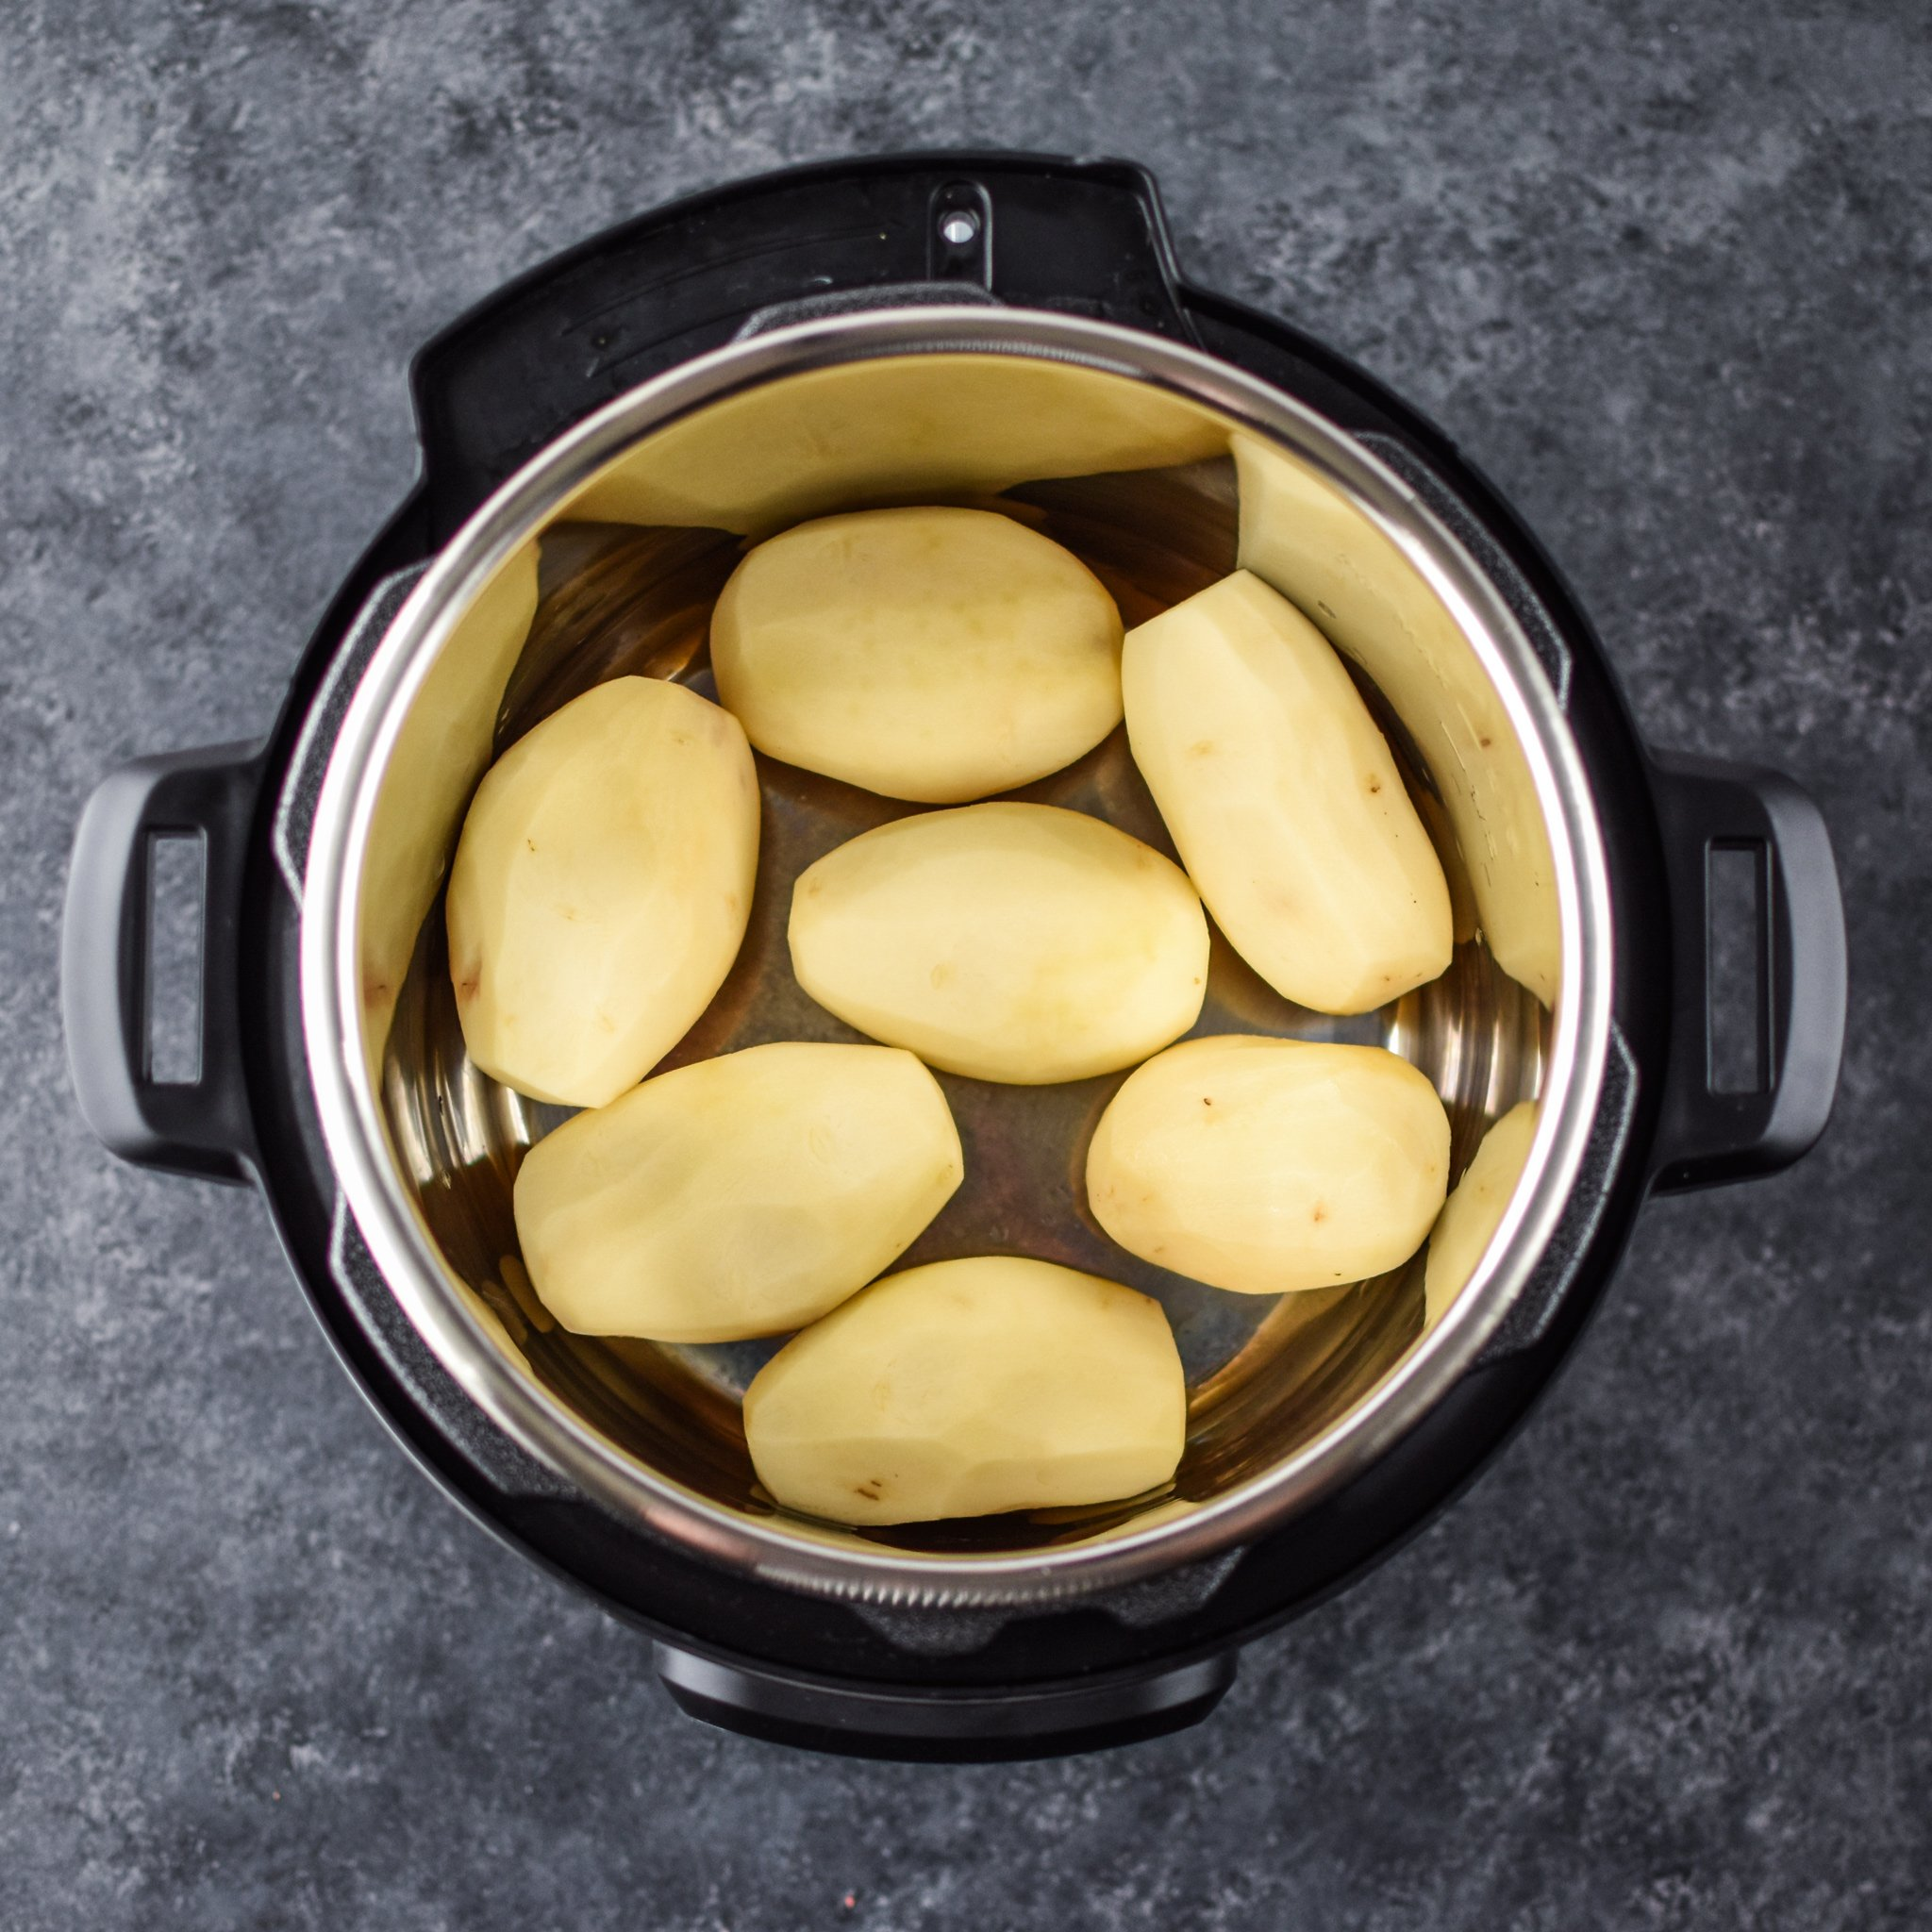 7 russet potatoes peeled in an Instant Pot ready to be cooked.